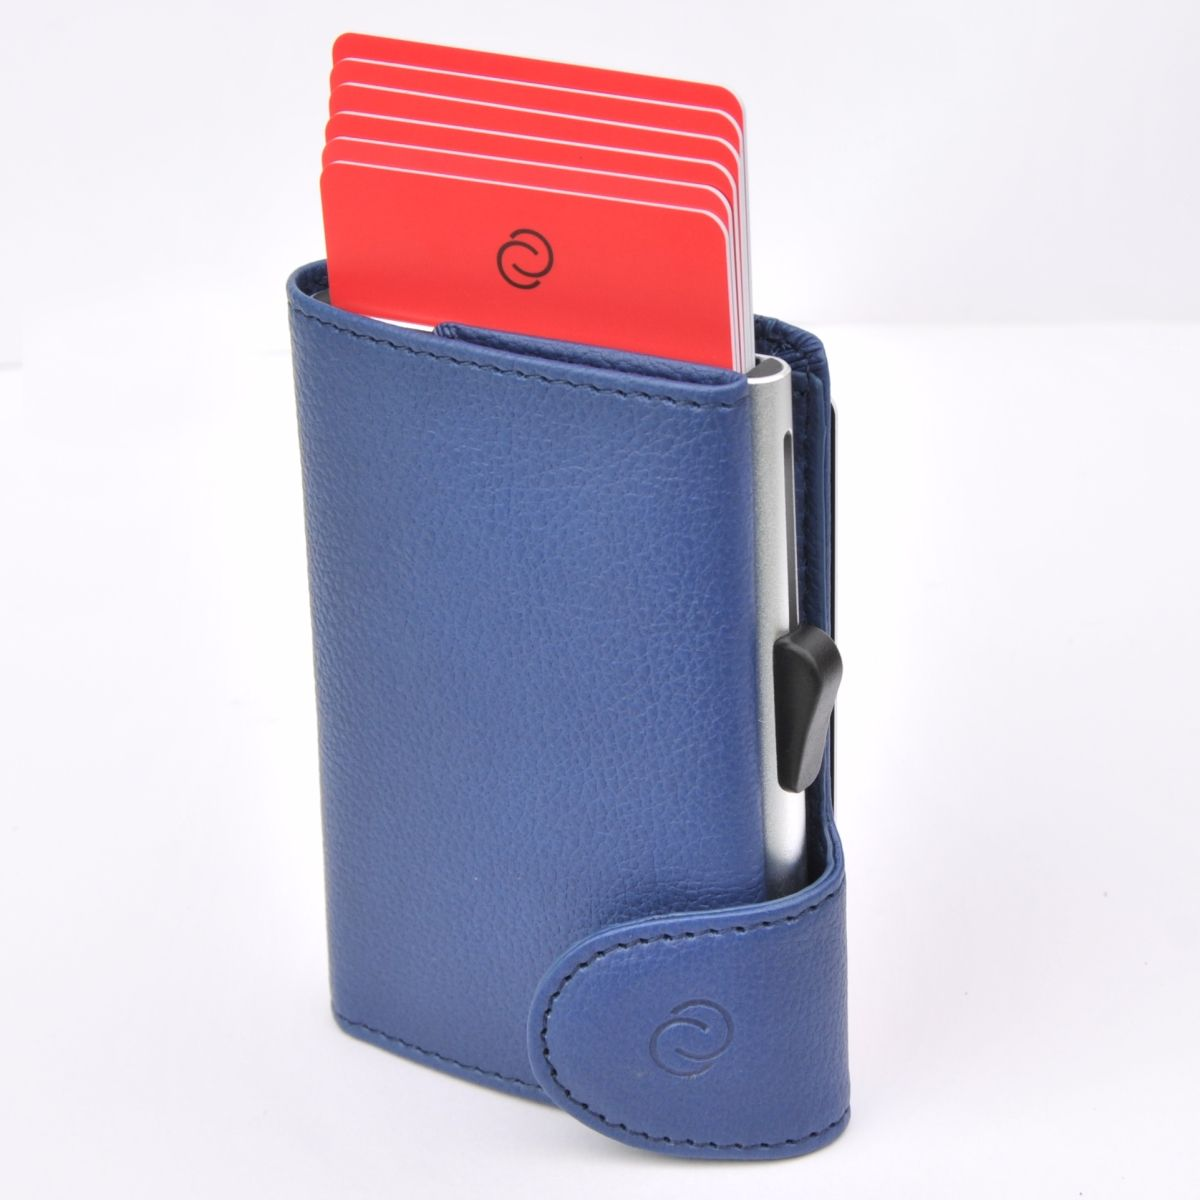 Aluminum Card Holder with Genuine Leather - Blue